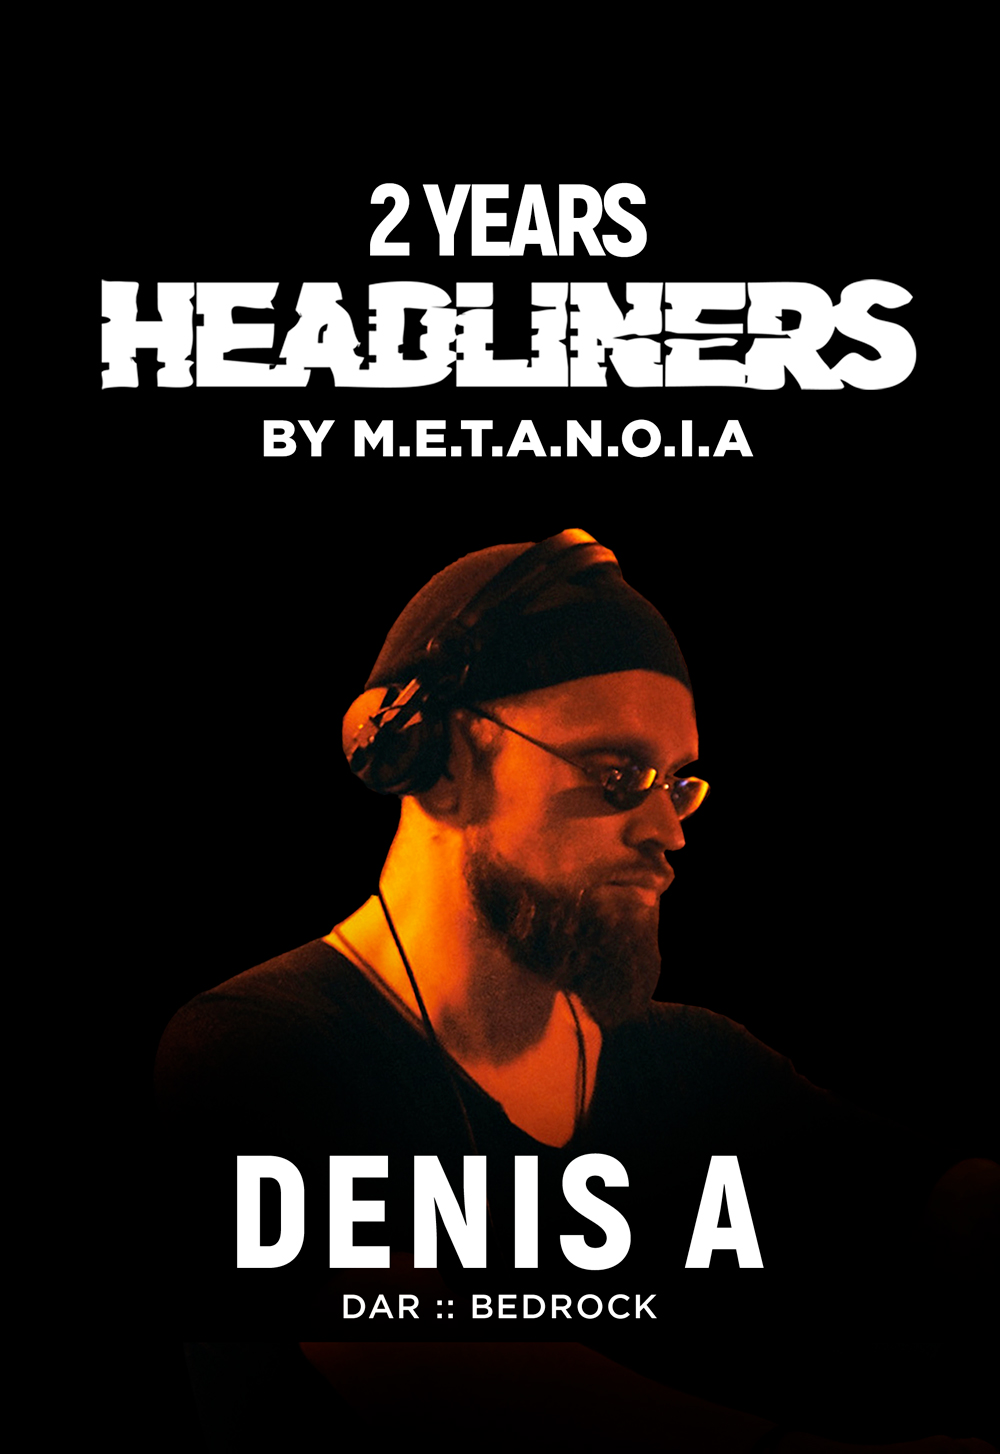 Headliners - Denis A